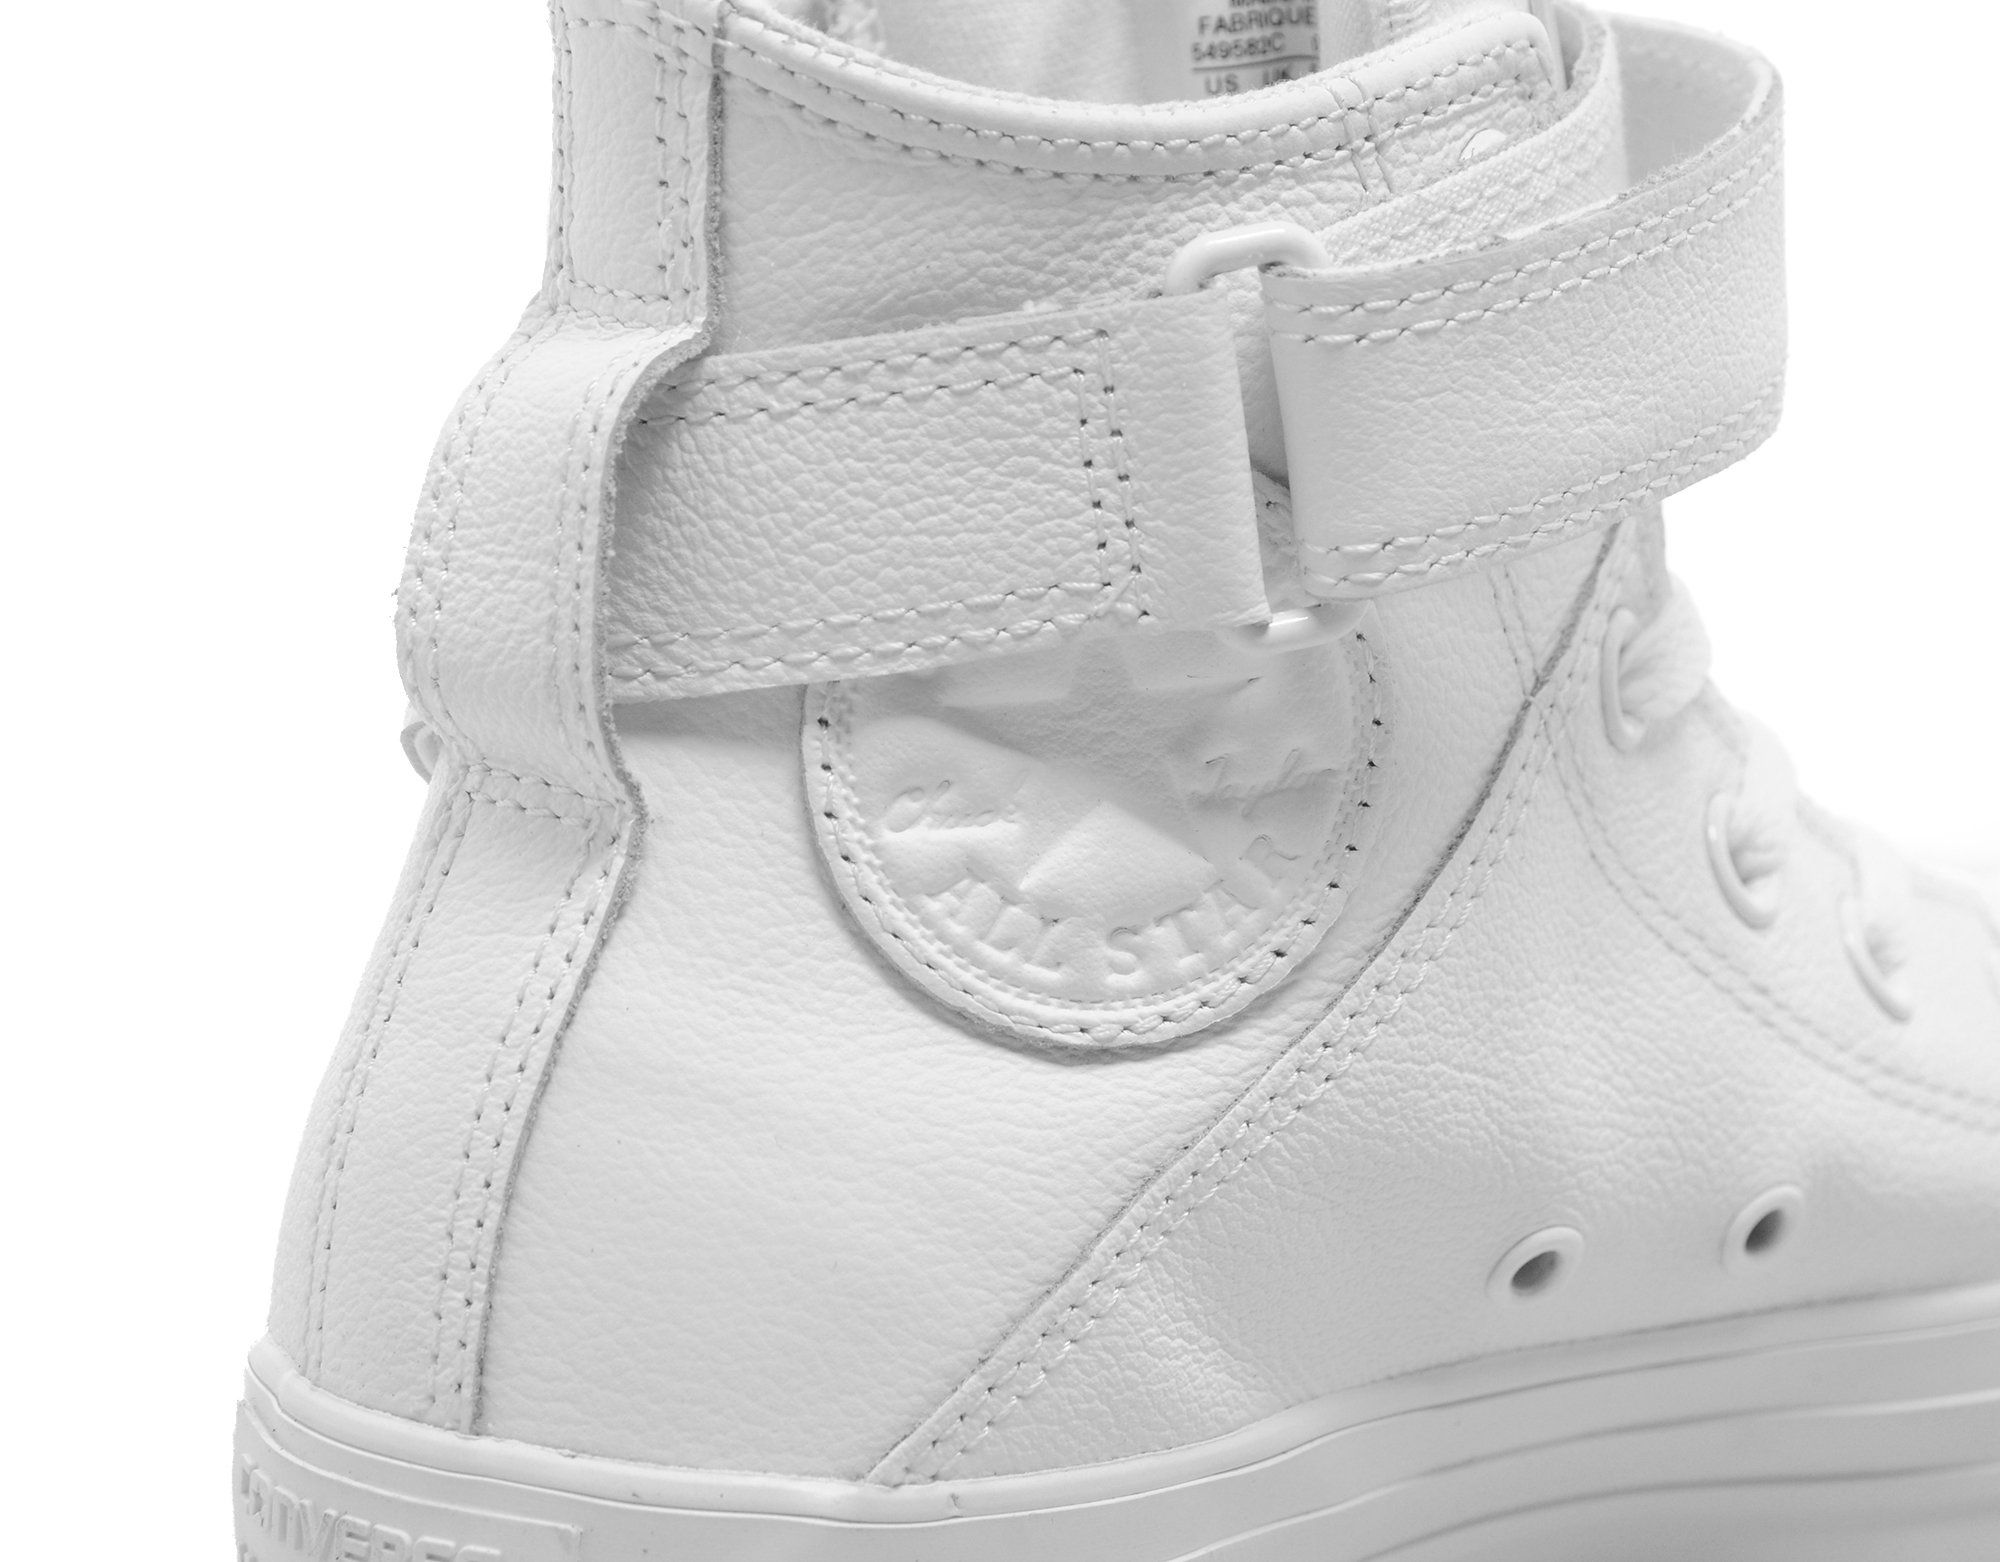 Converse All Star Hi Brea Leather Women's